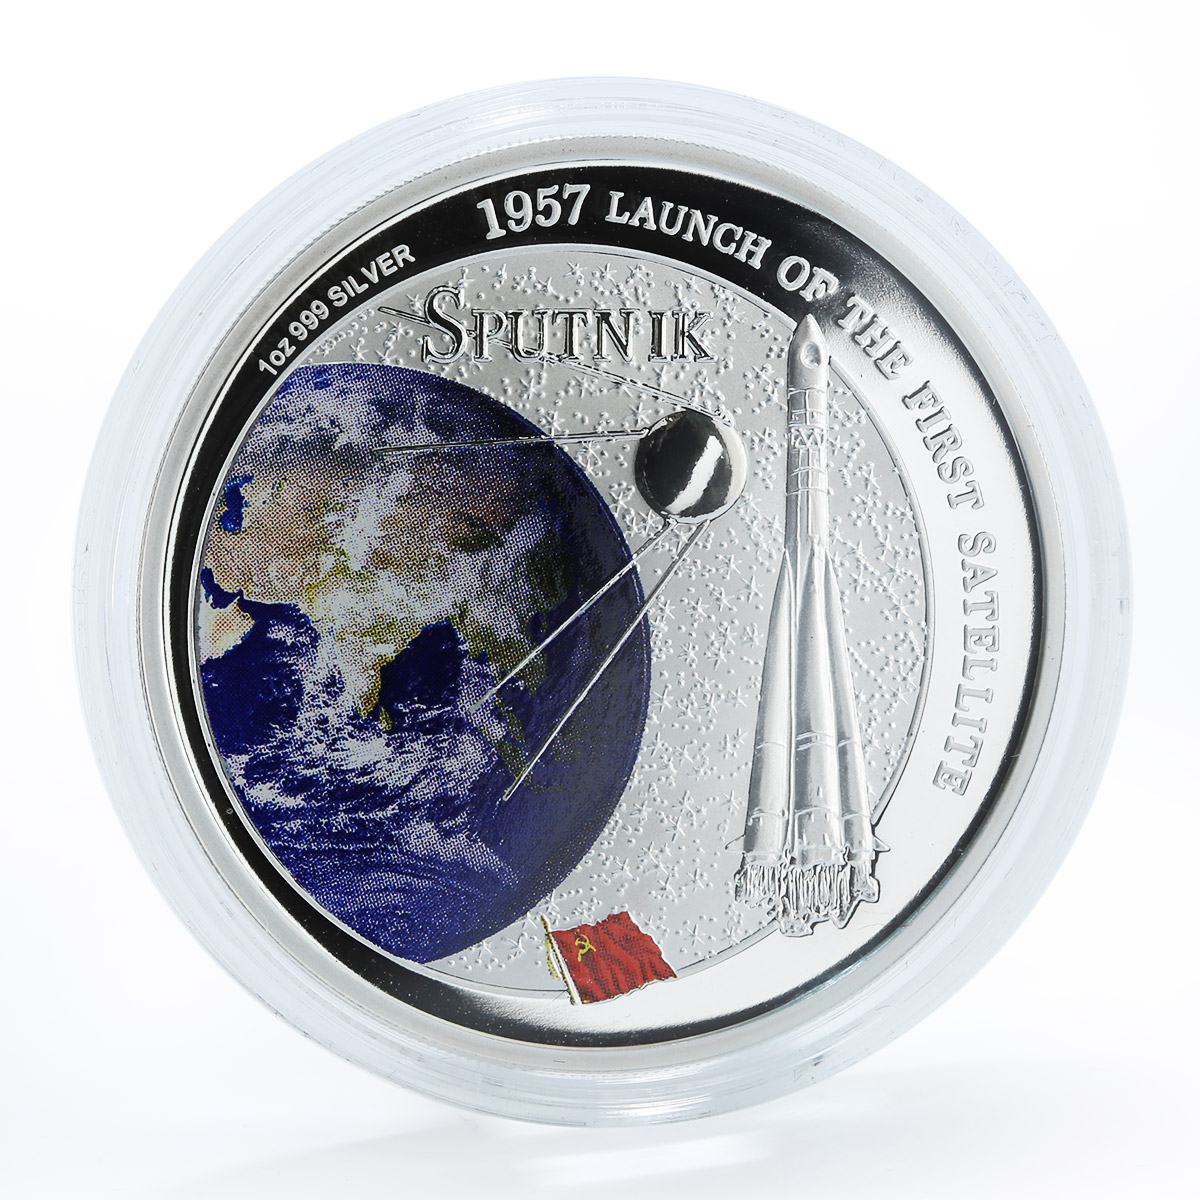 Fiji $2 Sputnik 1957 Launch of the First Satellite 1 Oz Silver coin 2007